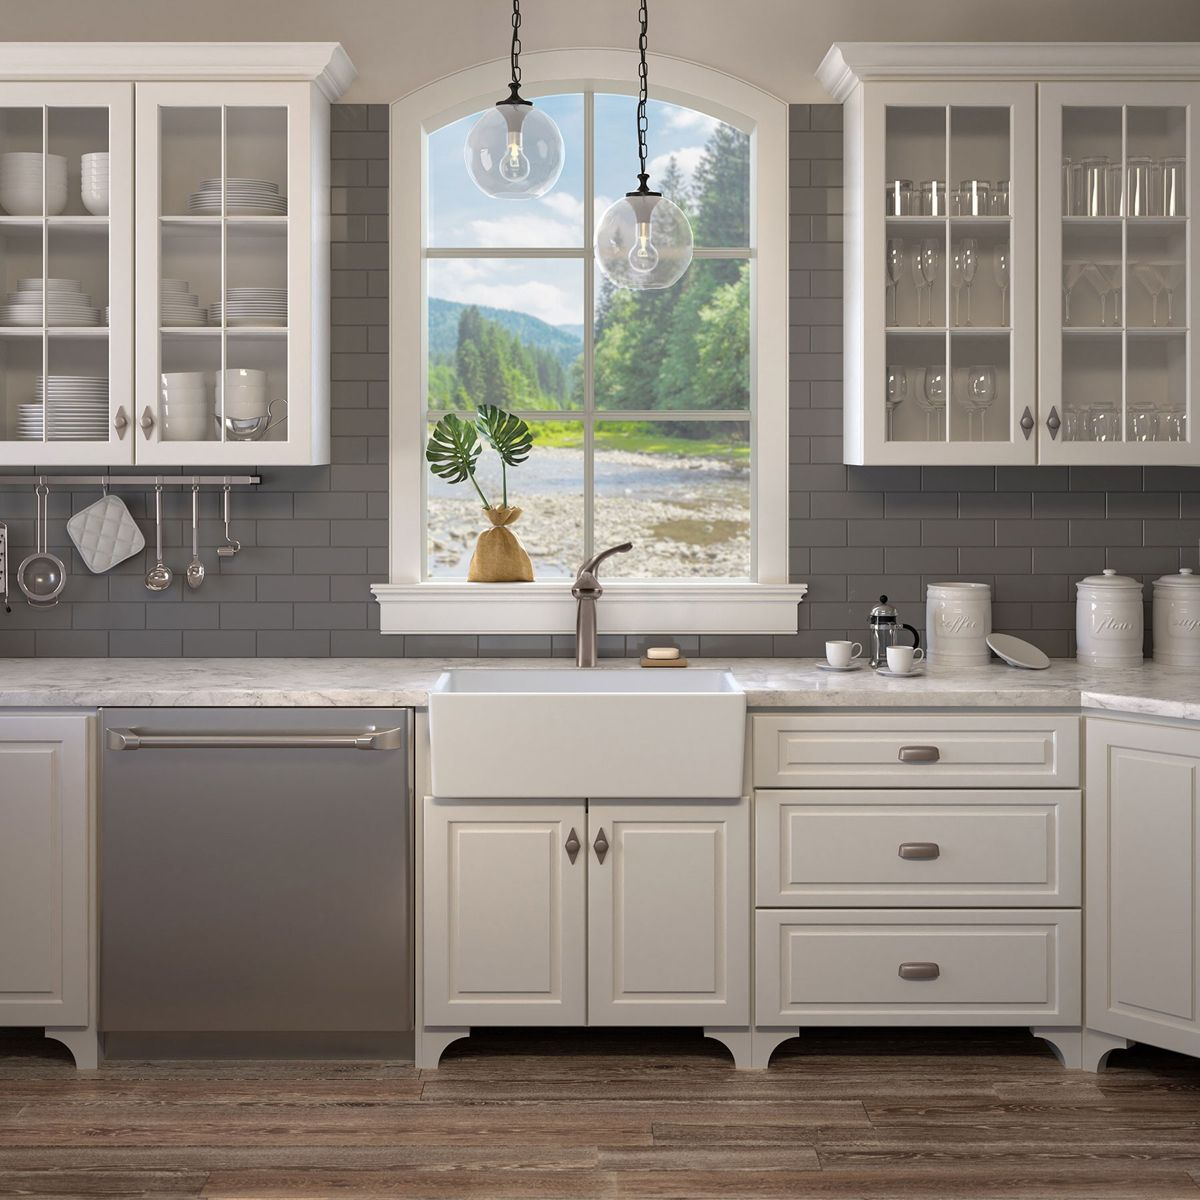 Surrey 30 Fireclay Farmhouse Kitchen Sink Farmhouse Sink